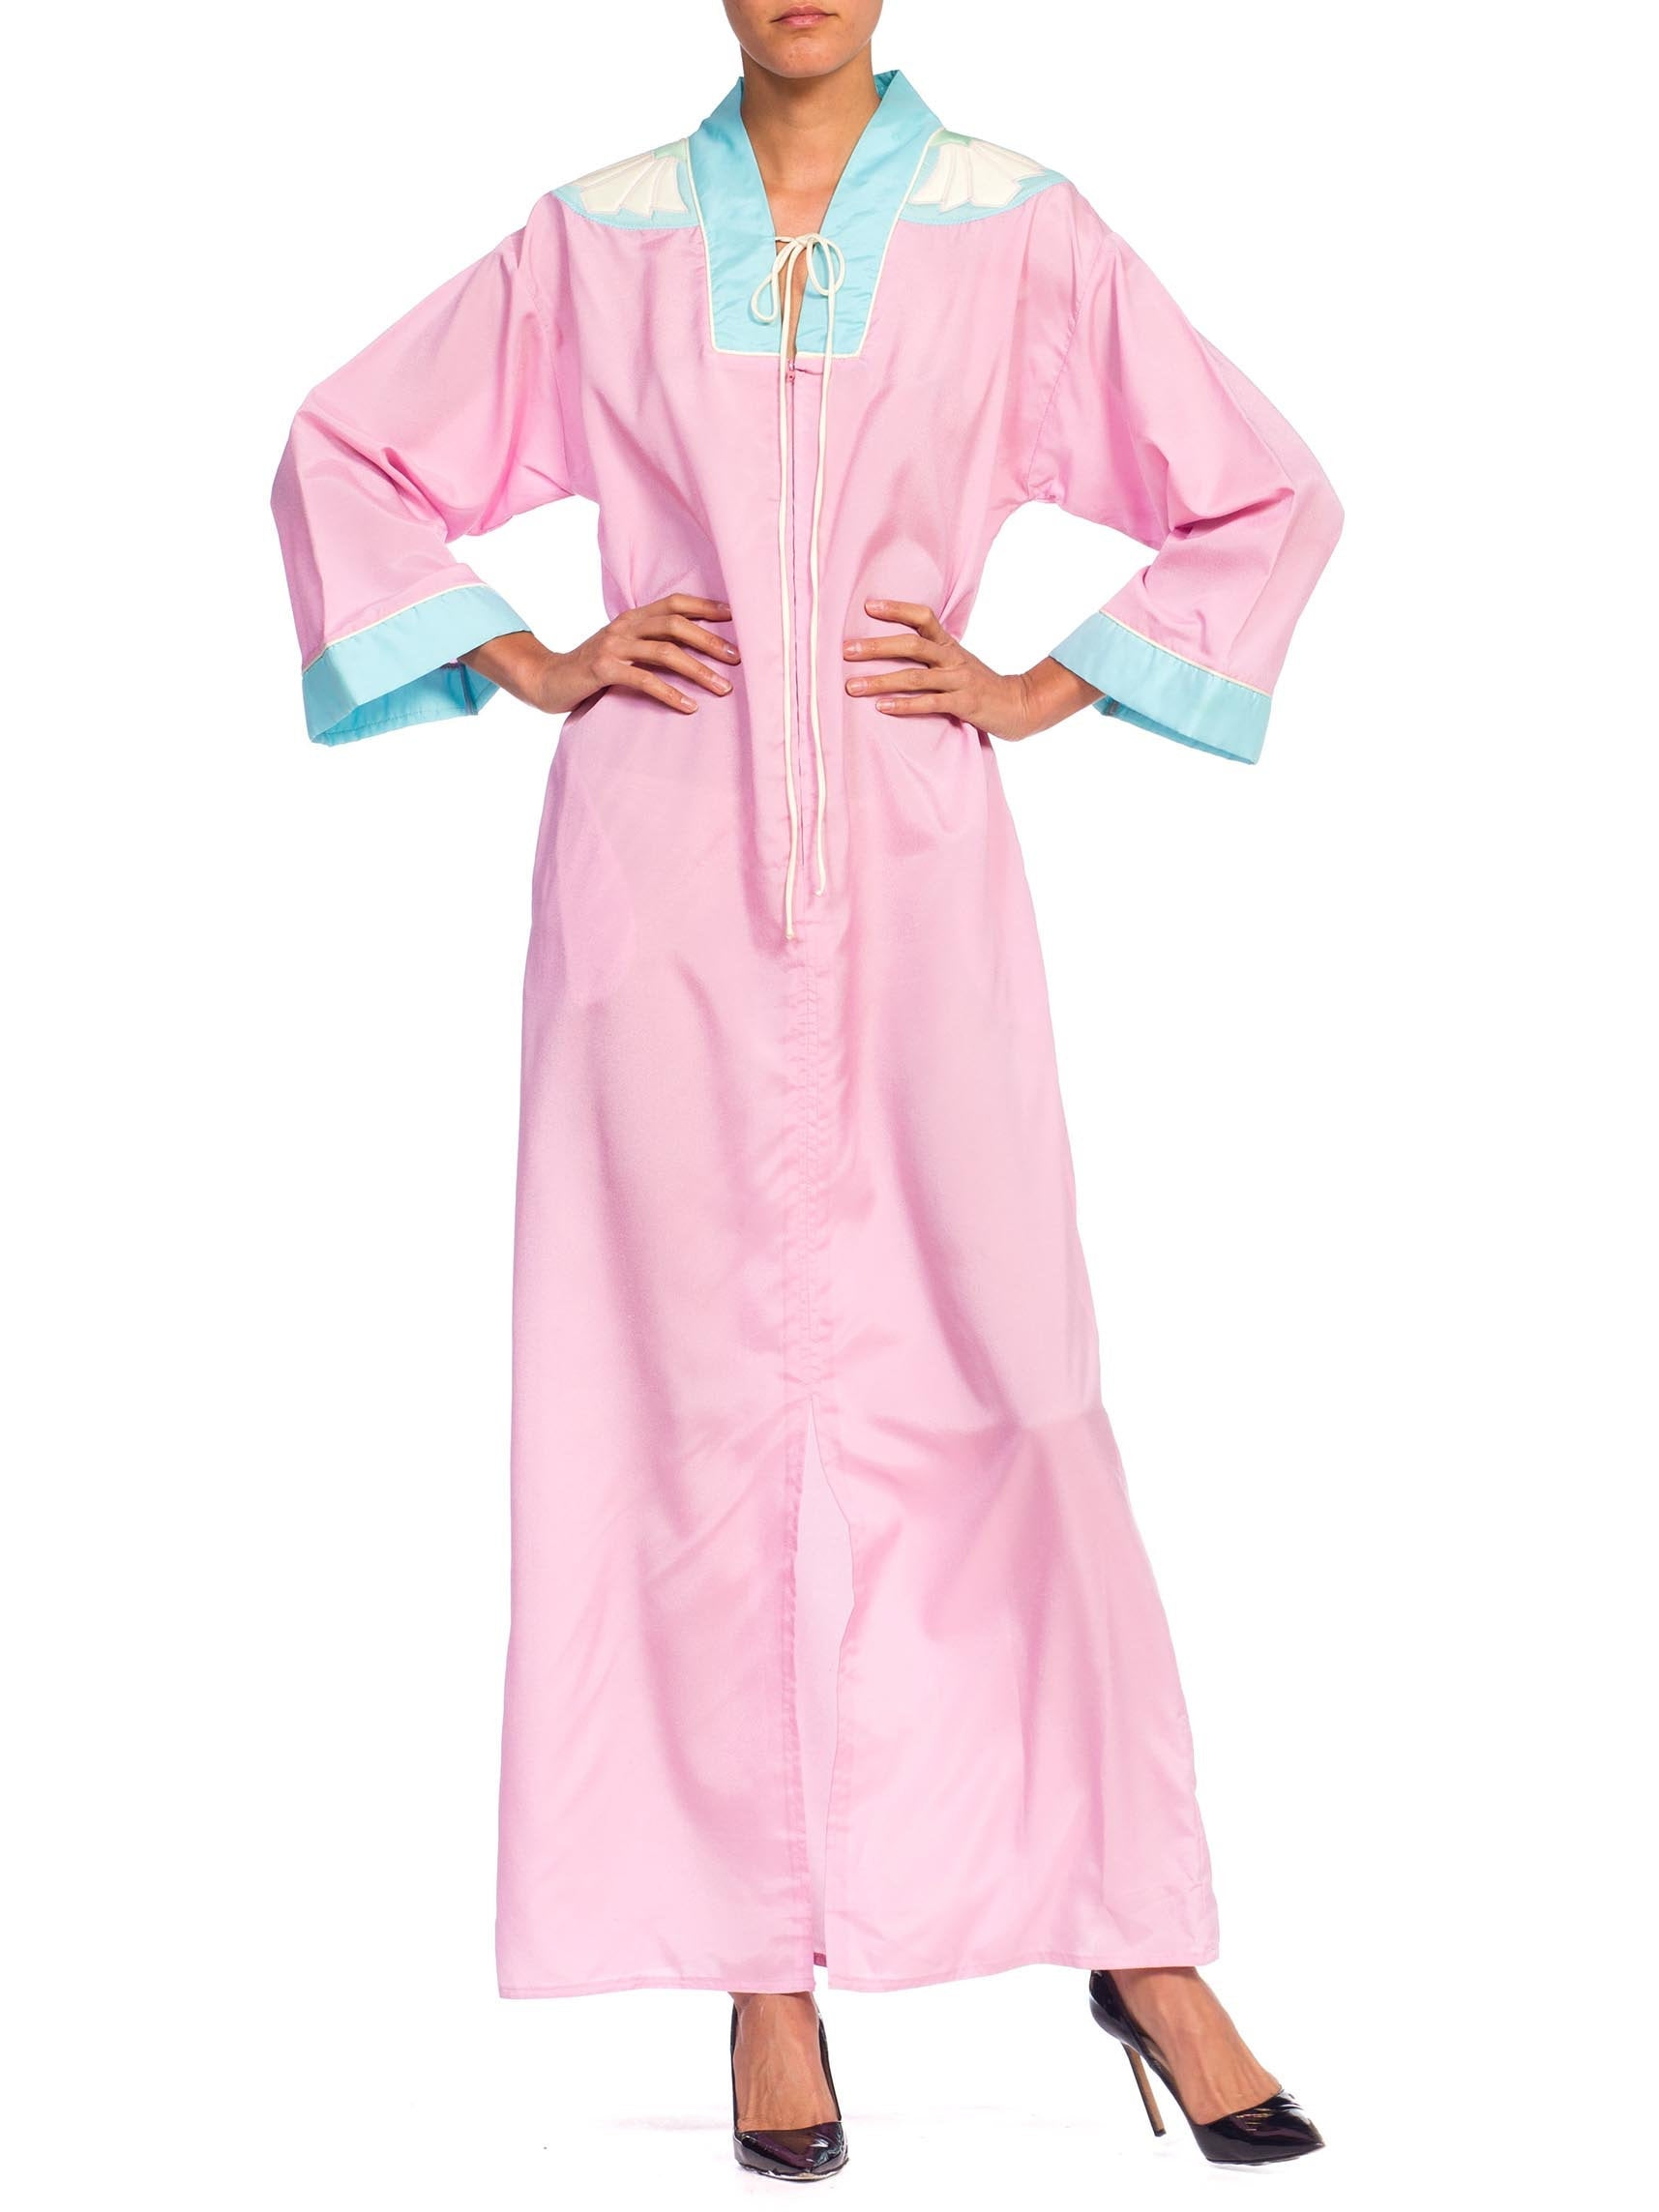 1970S BILL TICE Baby Pink & Blue Polyester Kaftan With Wing Appliqué On Shoulders